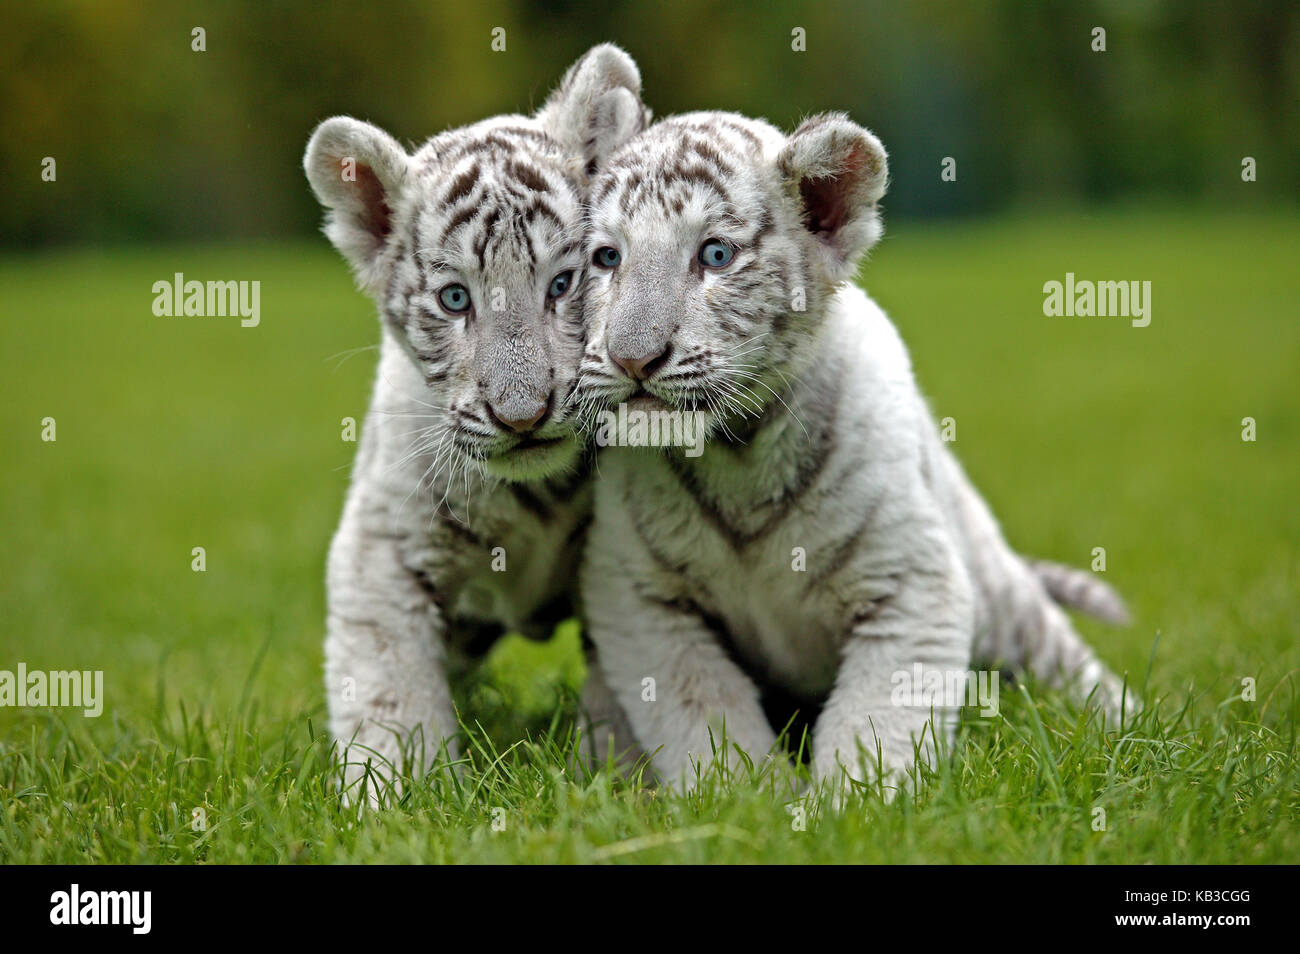 White tigers, Panthera tigris, two young animals, meadow, - Stock Image